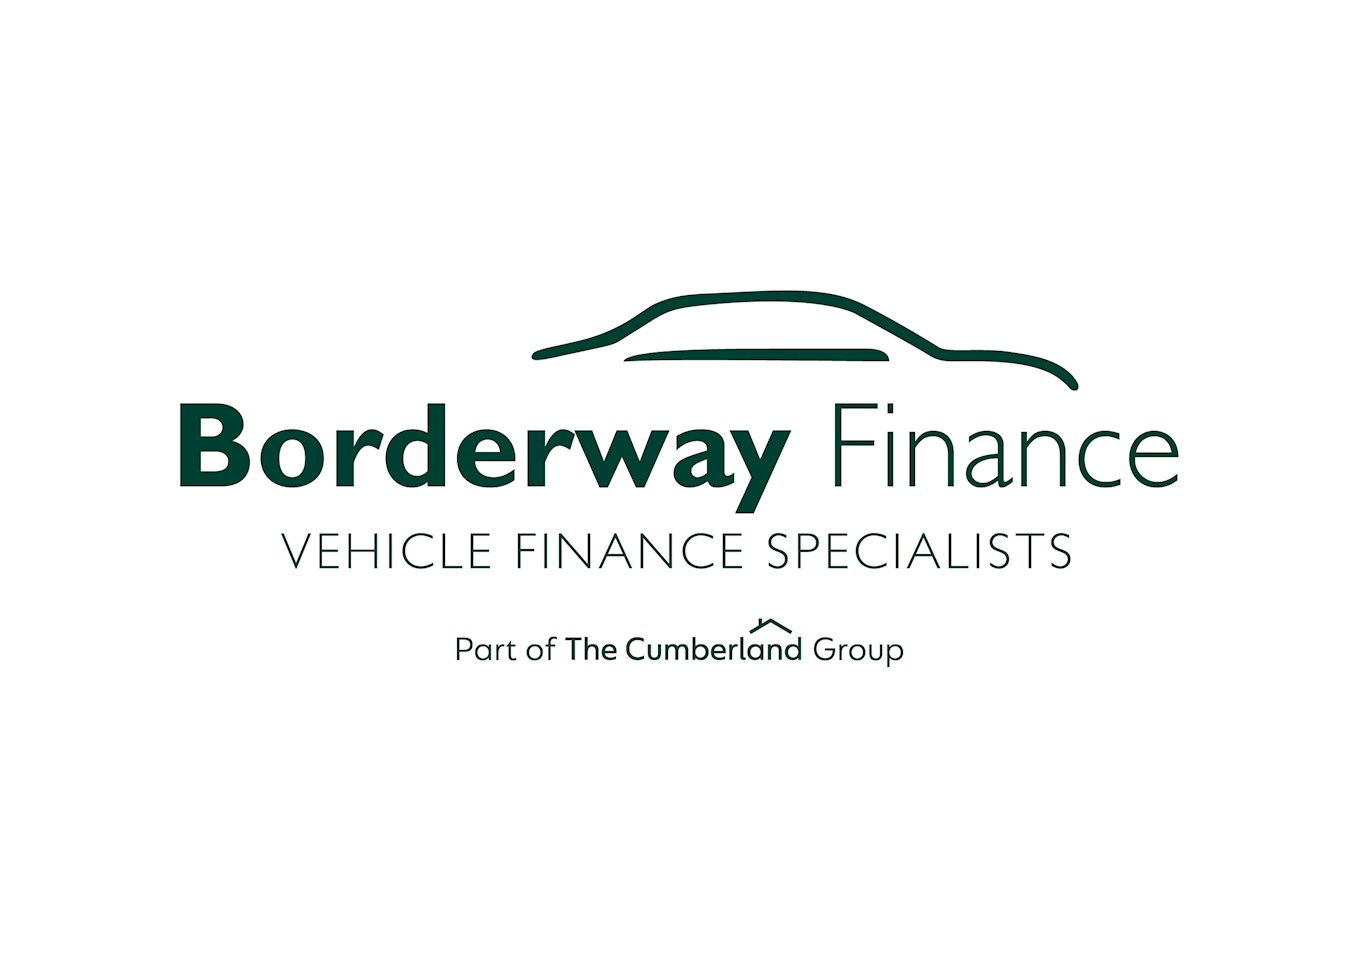 Borderway Finance